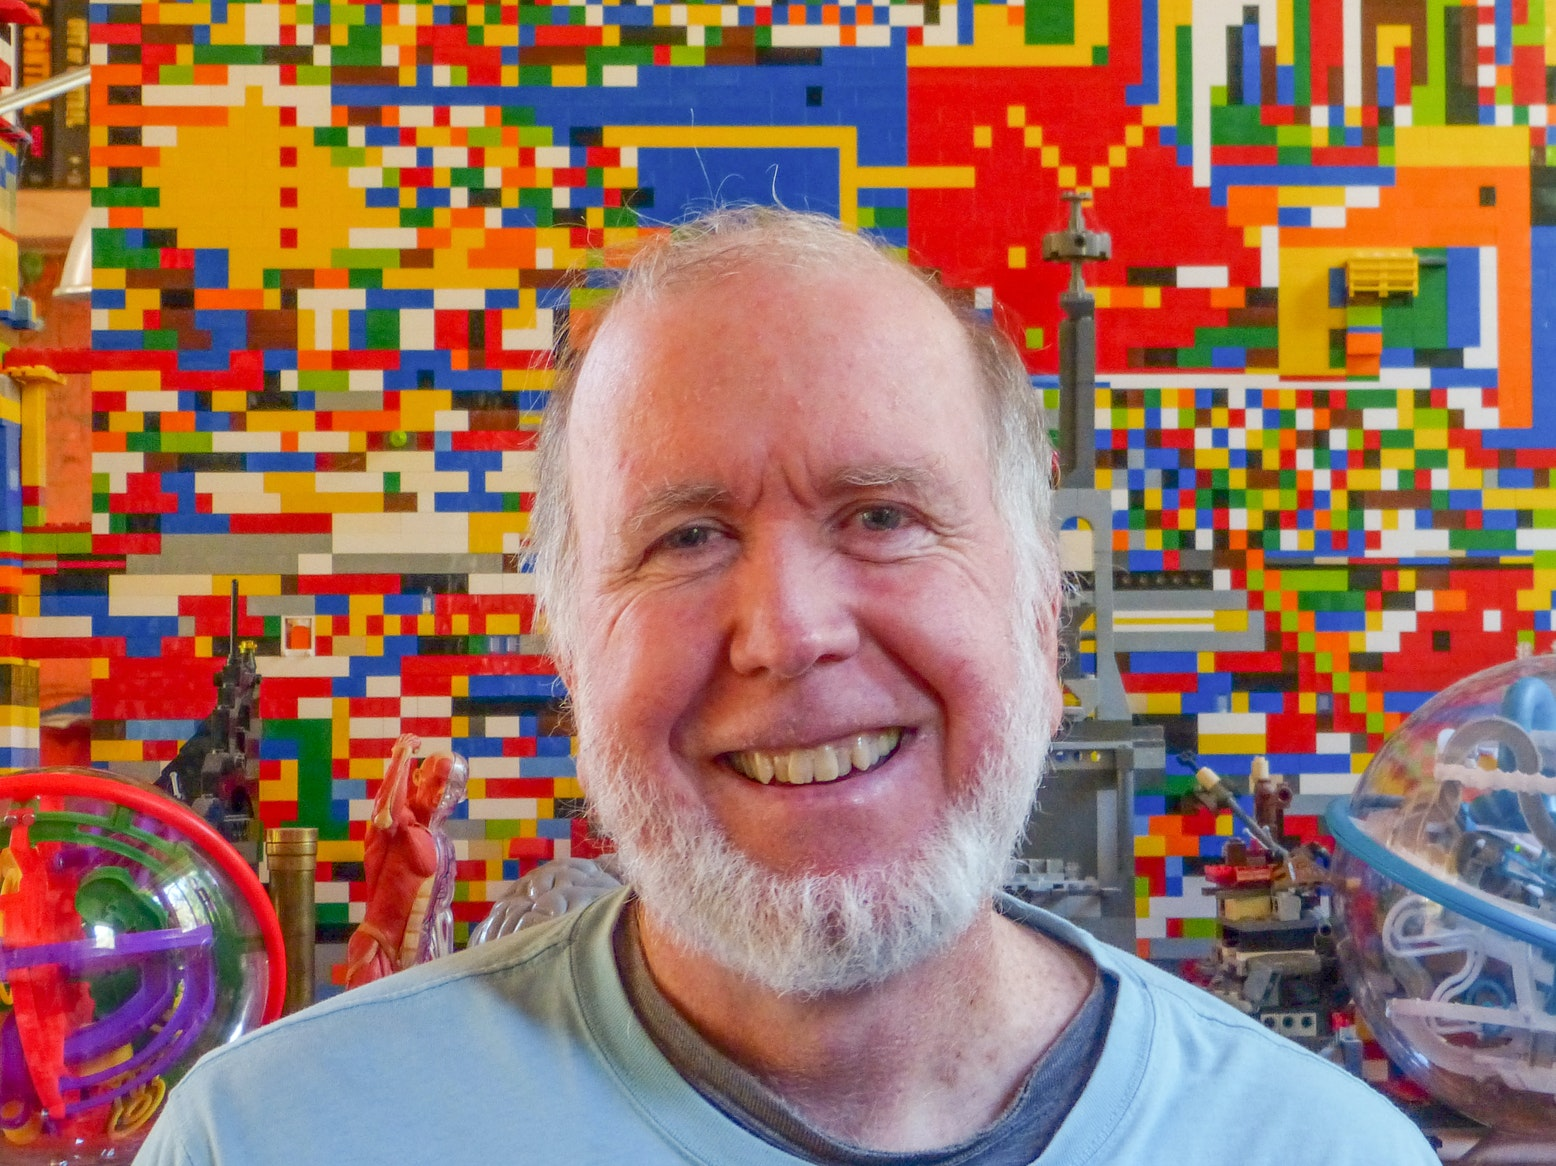 Kevin Kelly Says Pessimists Ignore Evidence and Progress is 'The Inevitable'